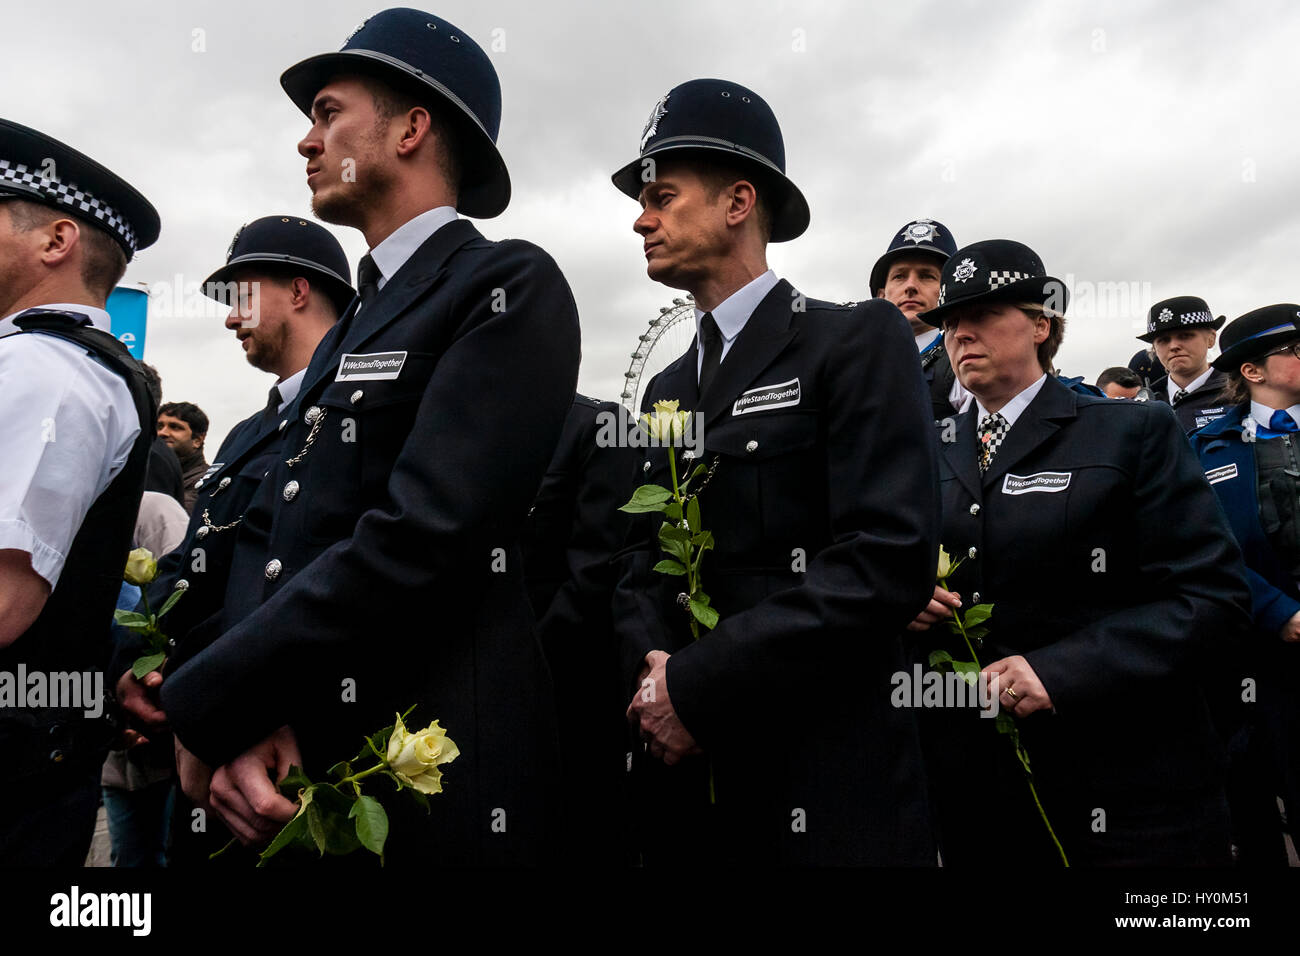 A Week After The London Terror Attack The Metropolitan Police Force Pay Their Respects To The Victims, Westminster - Stock Image